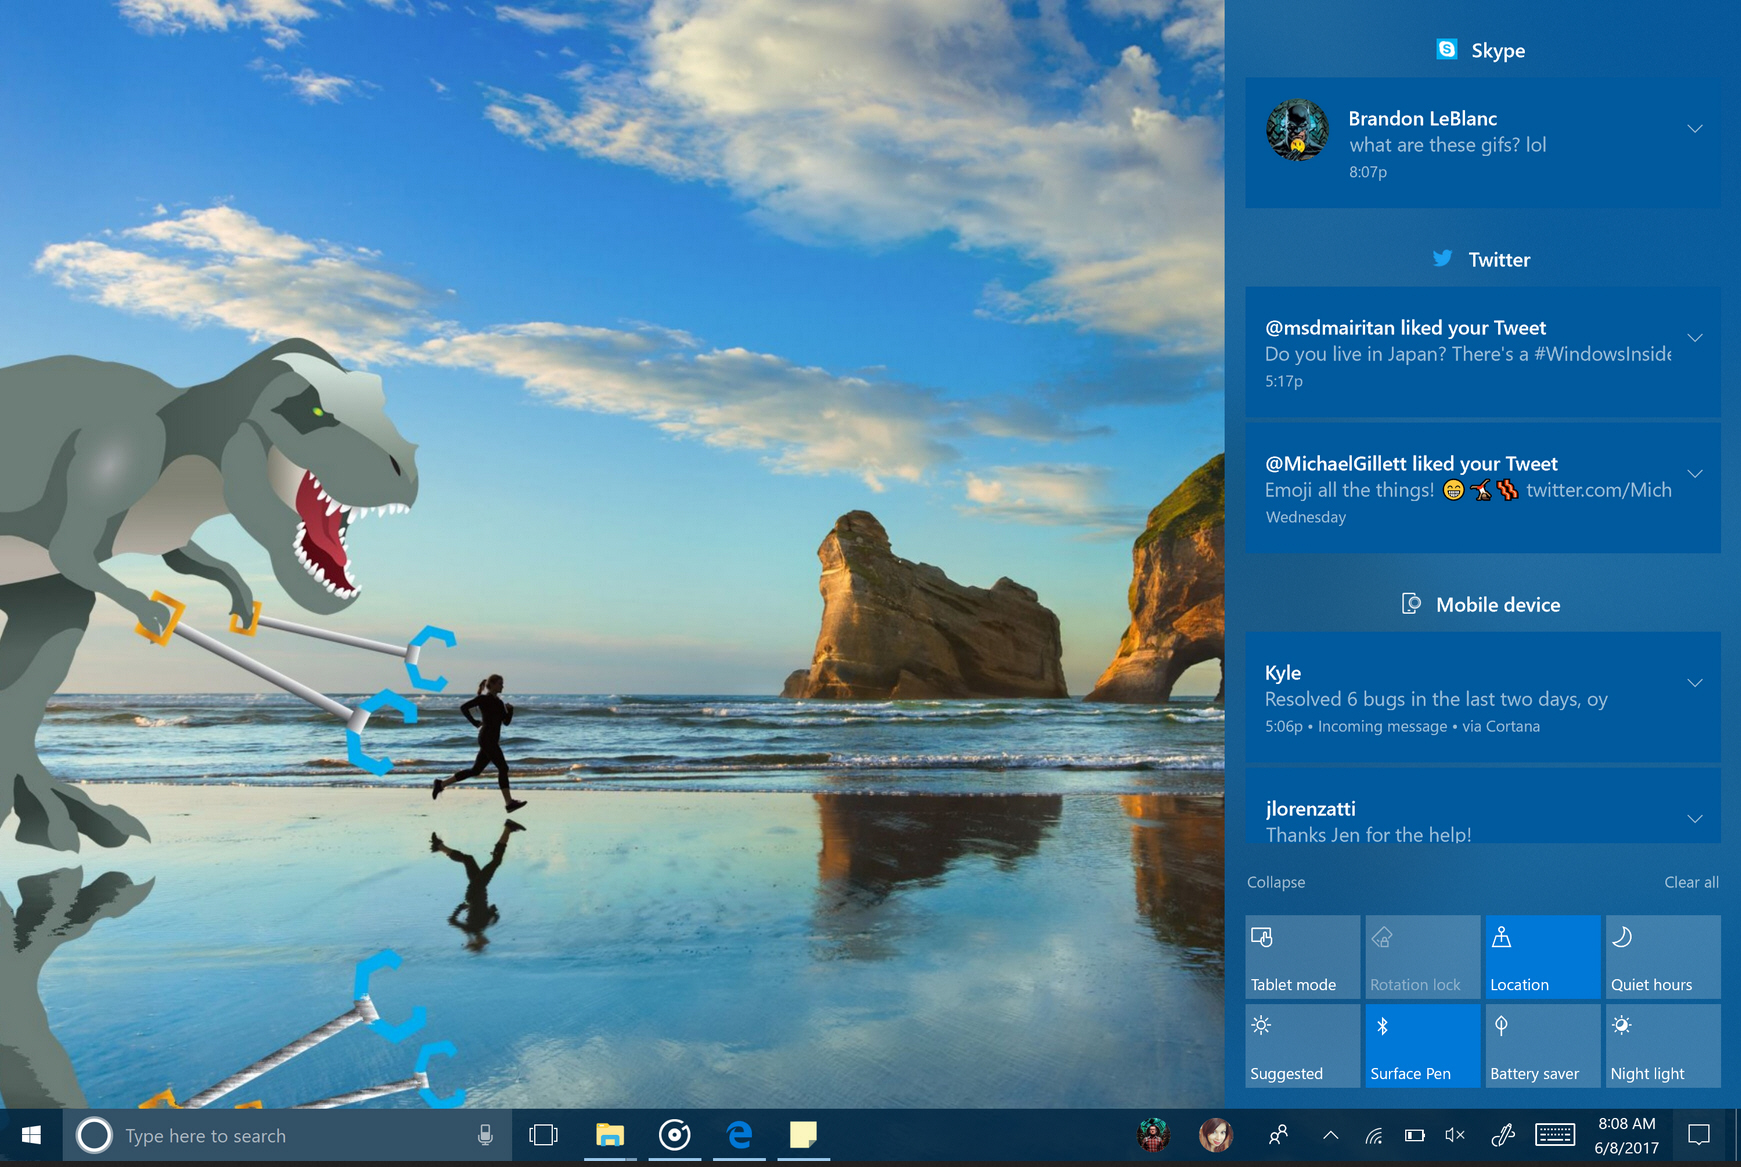 Microsoft Adds New Features, Improvements To Latest Windows 10 Test Build